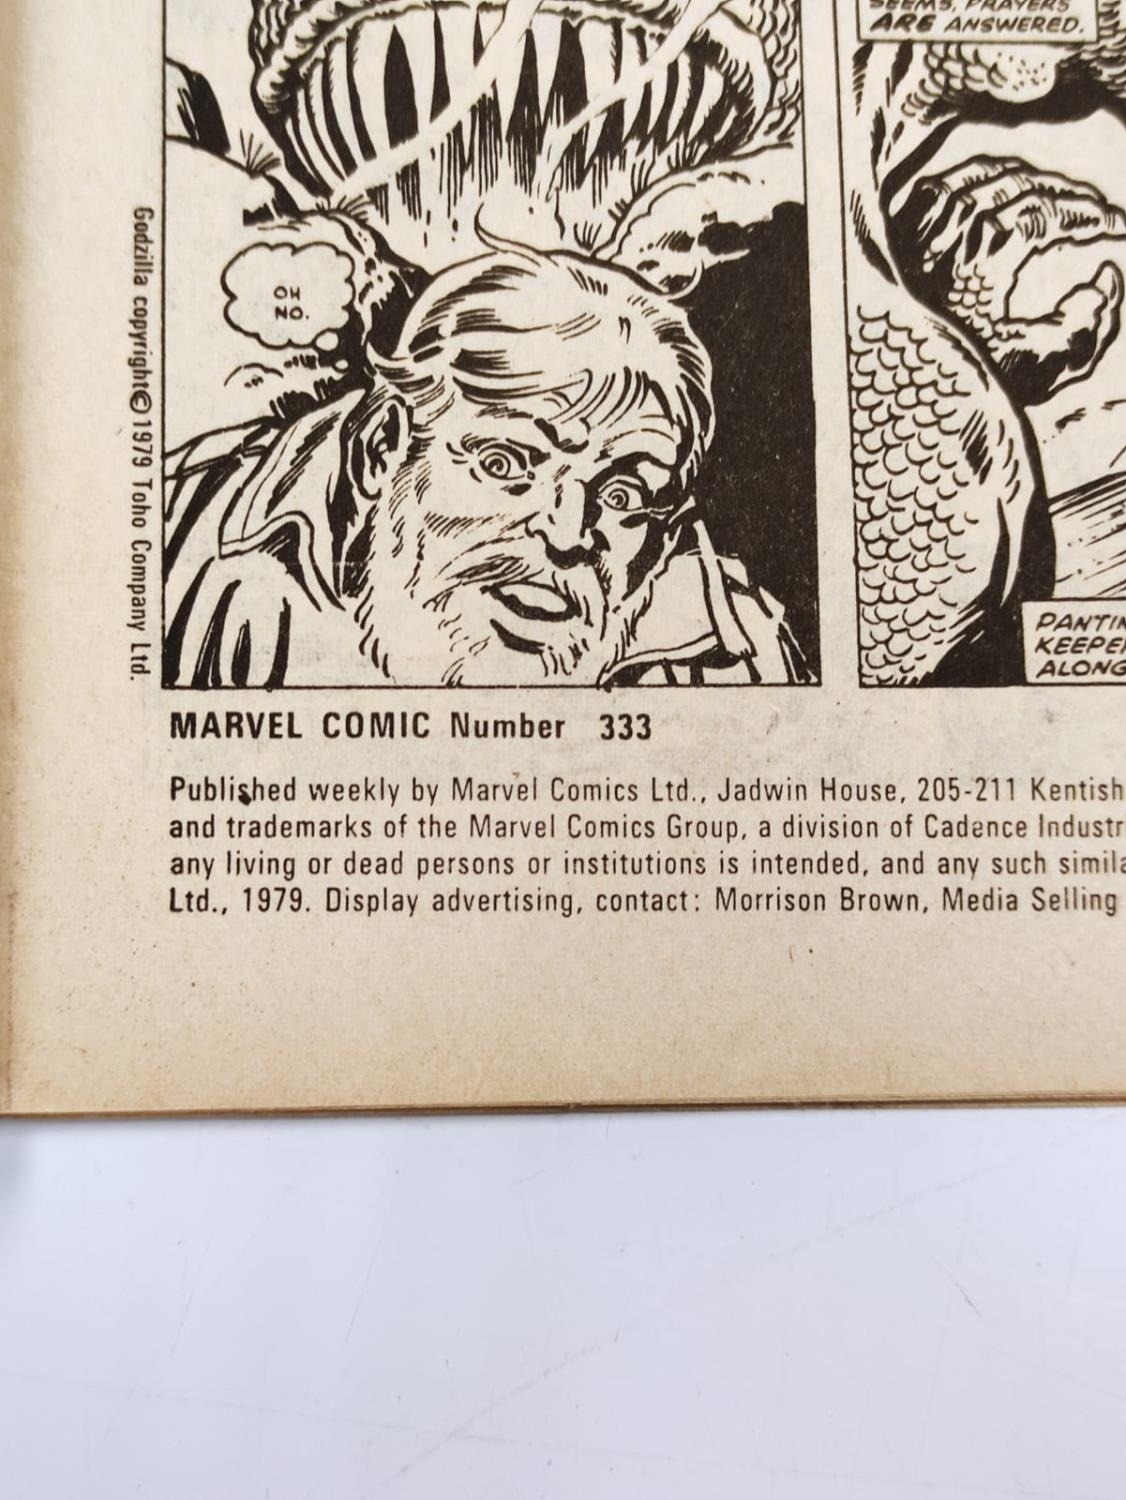 20 editions of mixed Vintage Marvel Comics. - Image 23 of 56